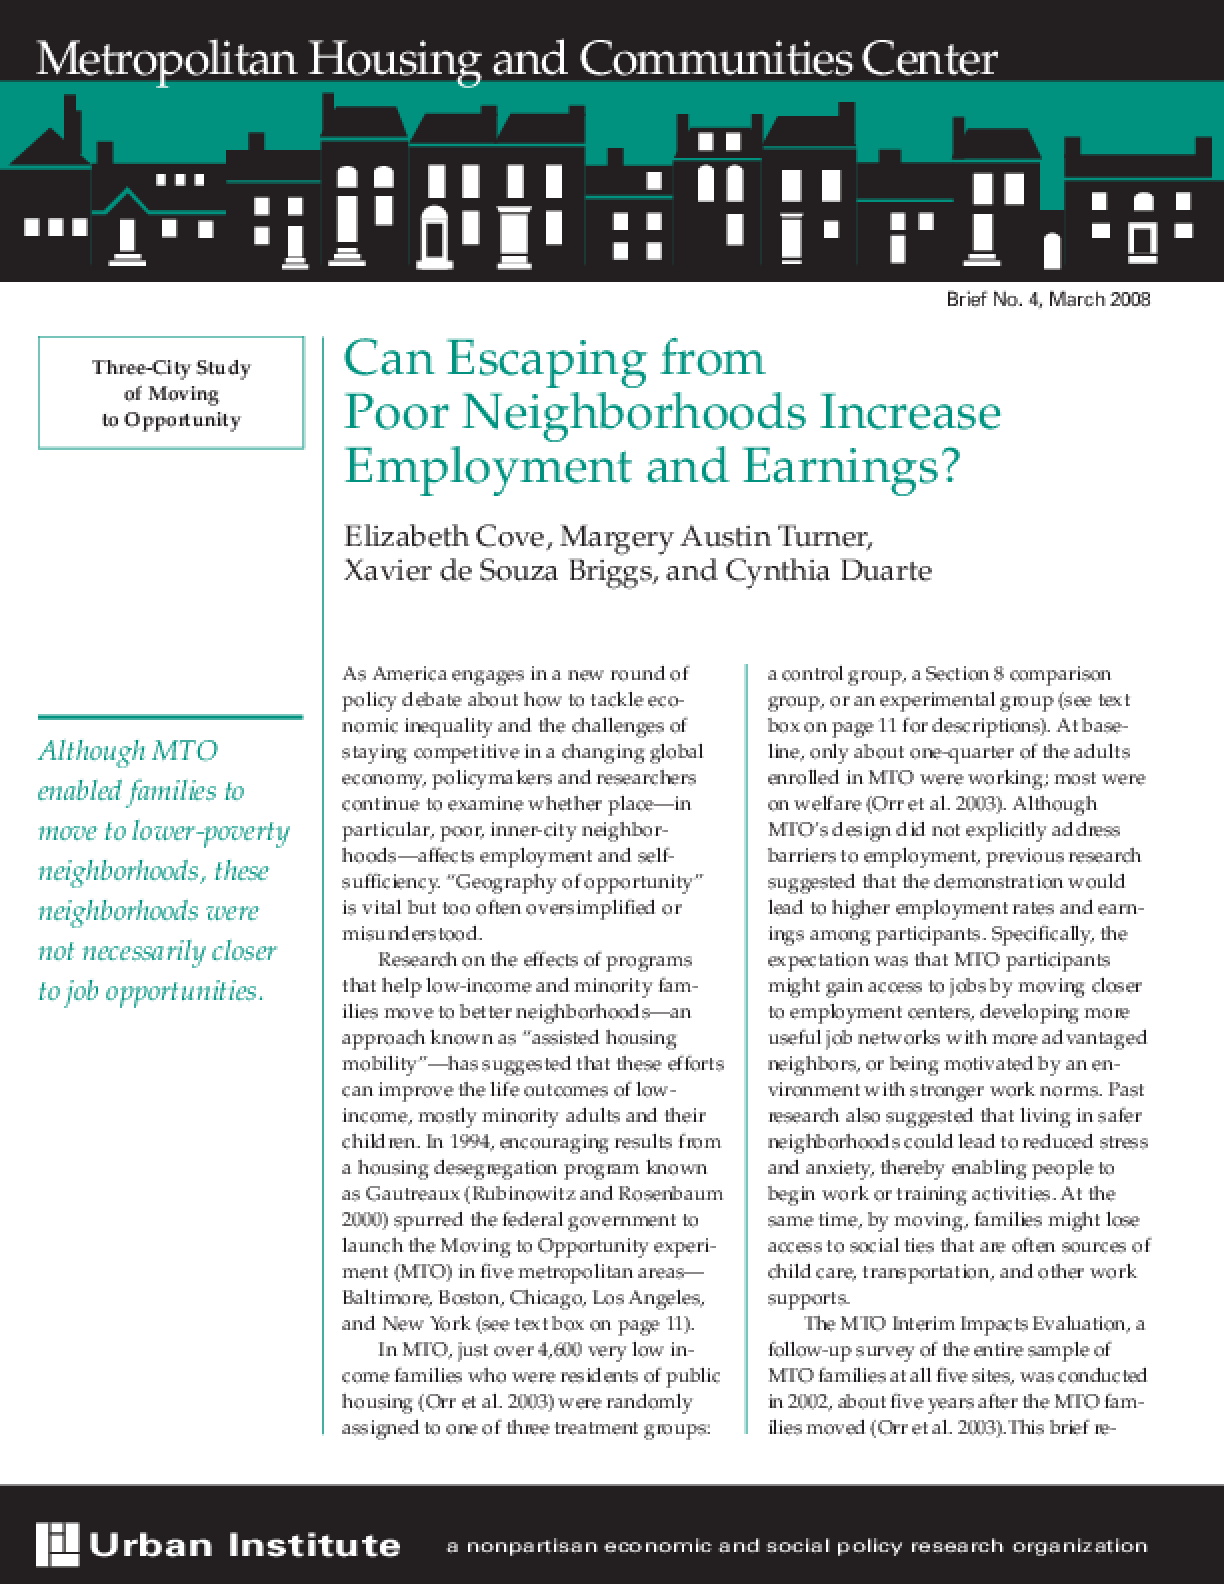 Can Escaping From Poor Neighborhoods Increase Employment and Earnings?